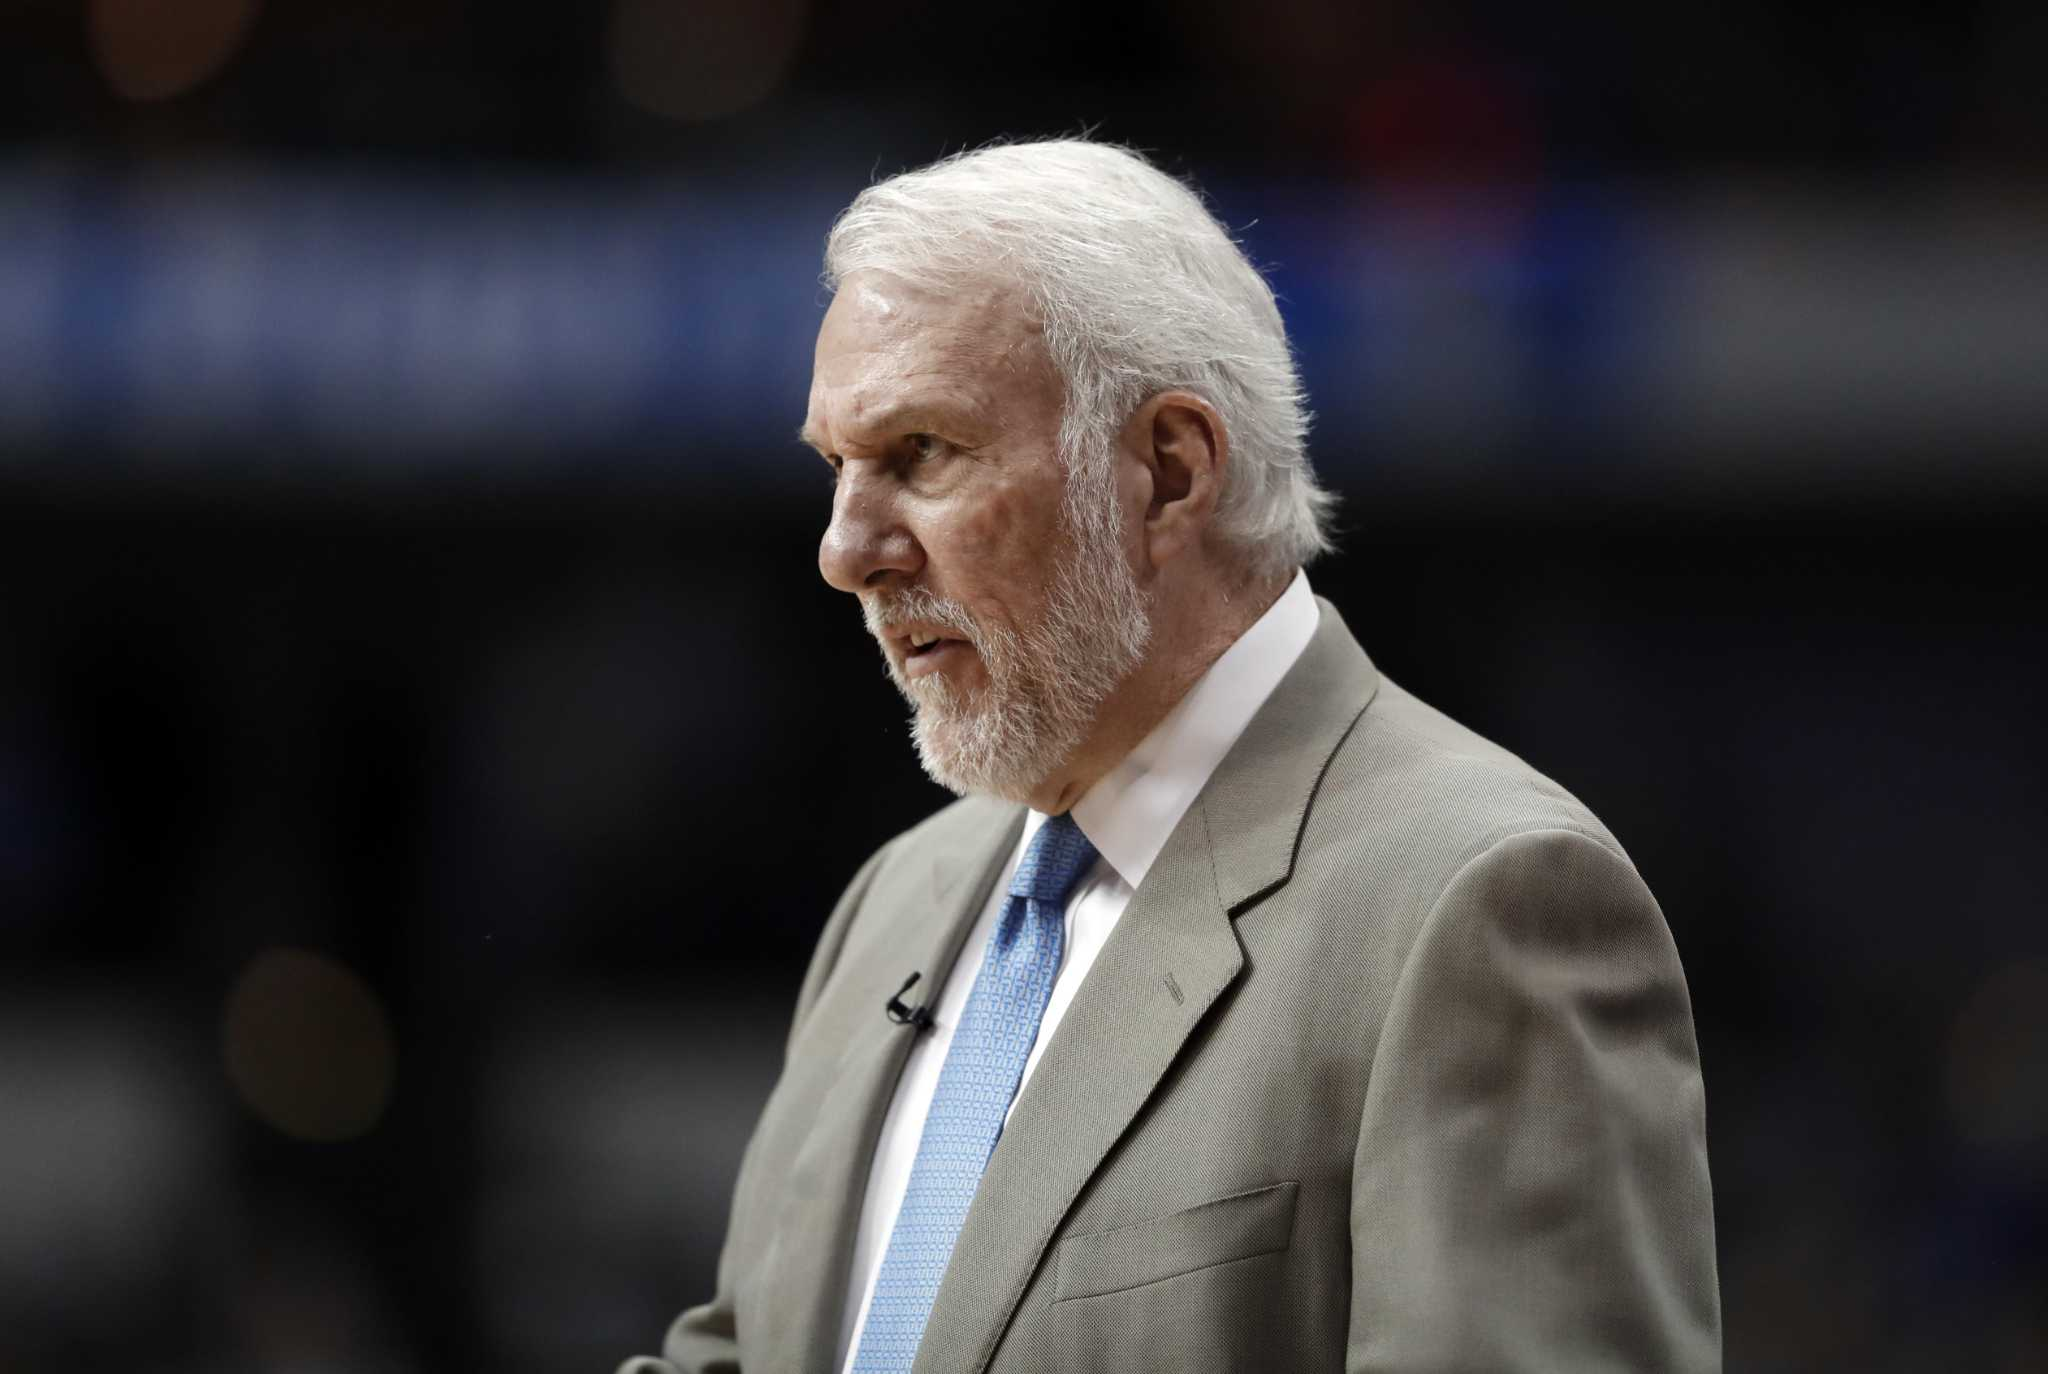 With little fanfare, Popovich becomes NBA's all-time winningest coach